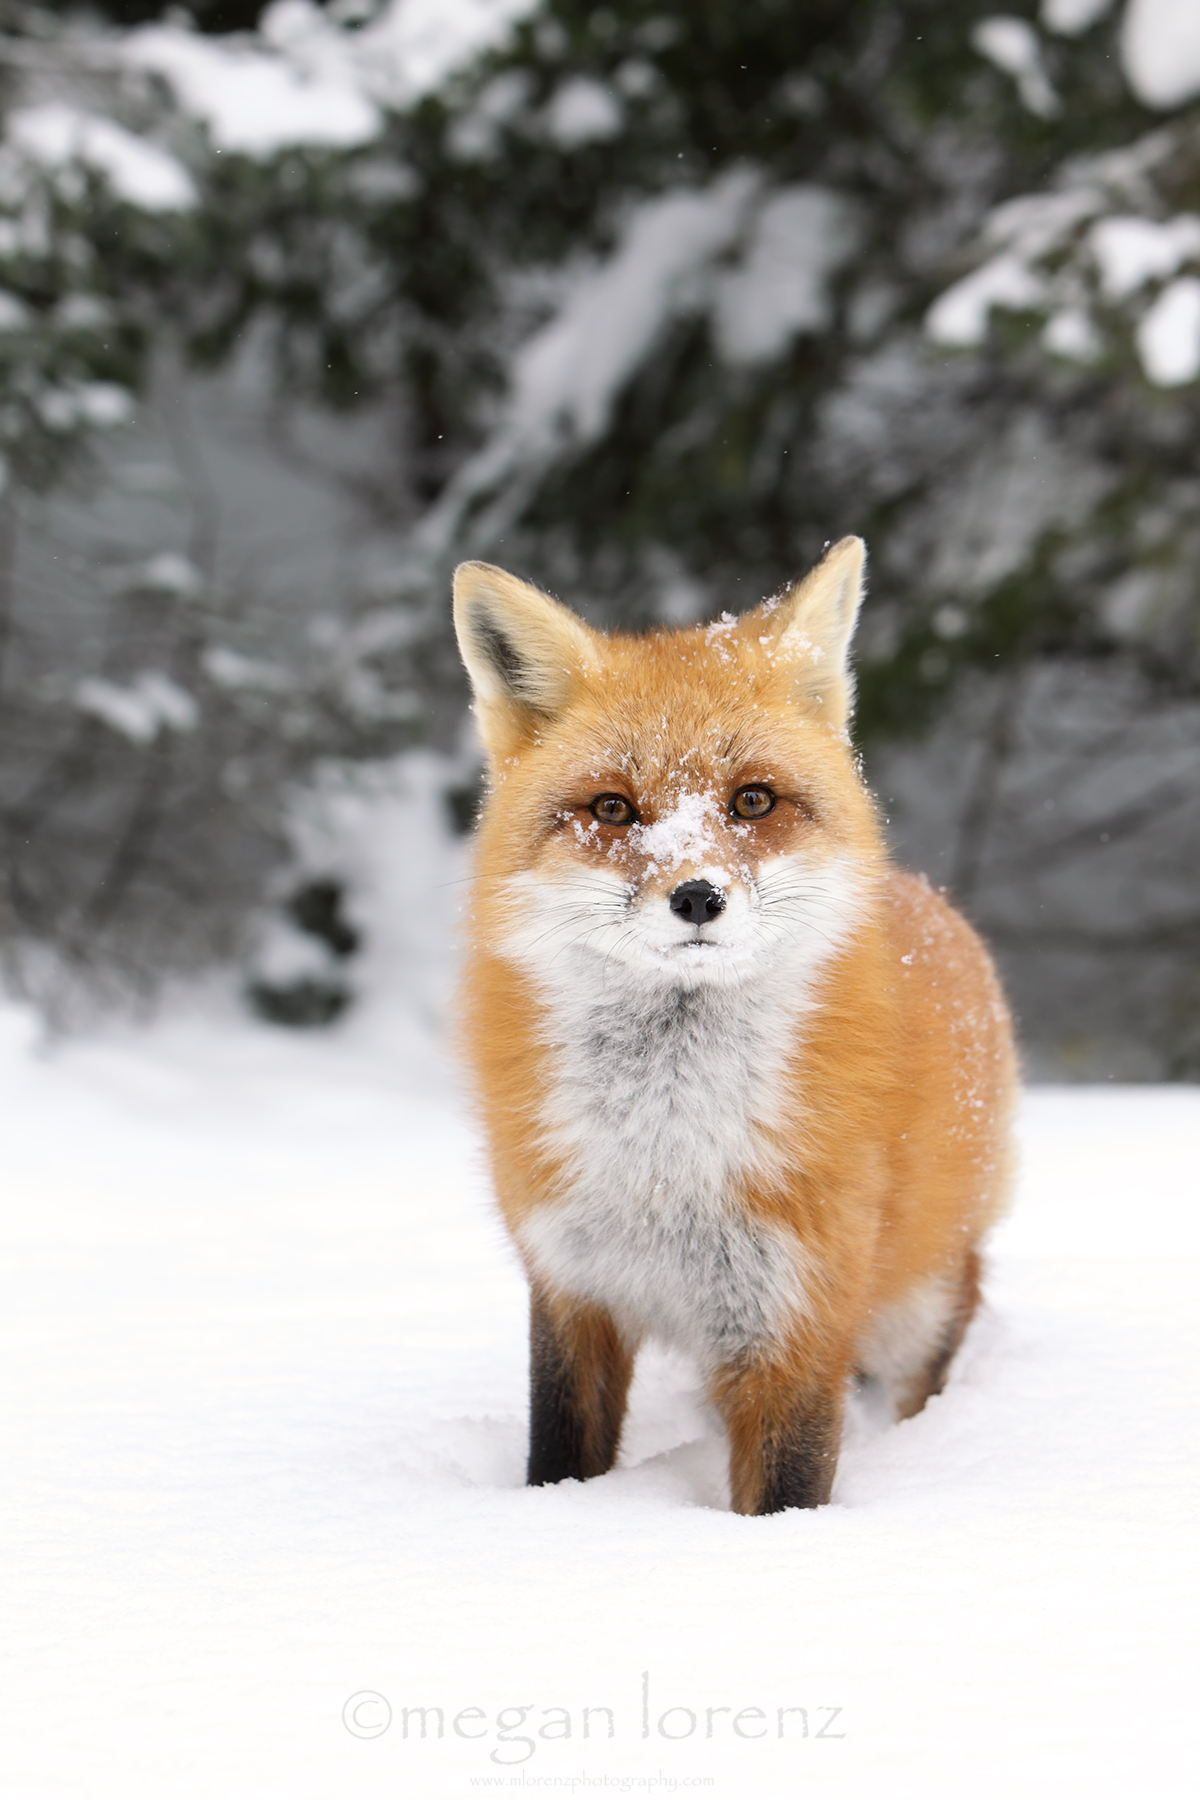 Cold Nose by Megan Lorenz ~ Wild Red Fox in Ontario, Canada**